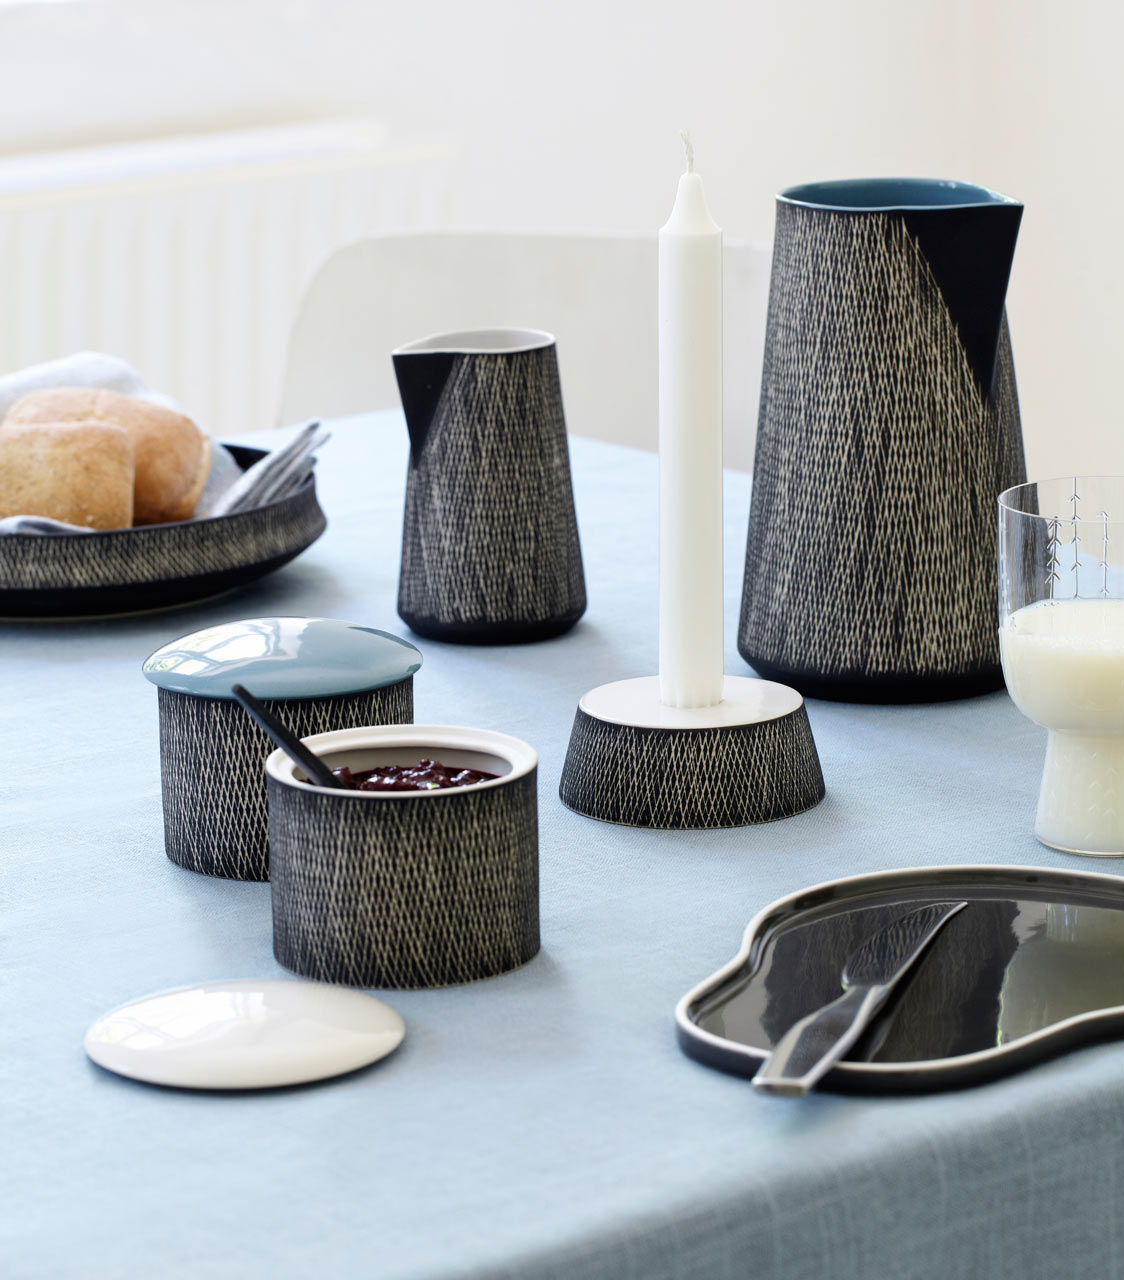 Rikki Tikki Just Retro Ceramic Tableware ... & Modern Tableware with a Retro Contemporary Vibe - Design Milk